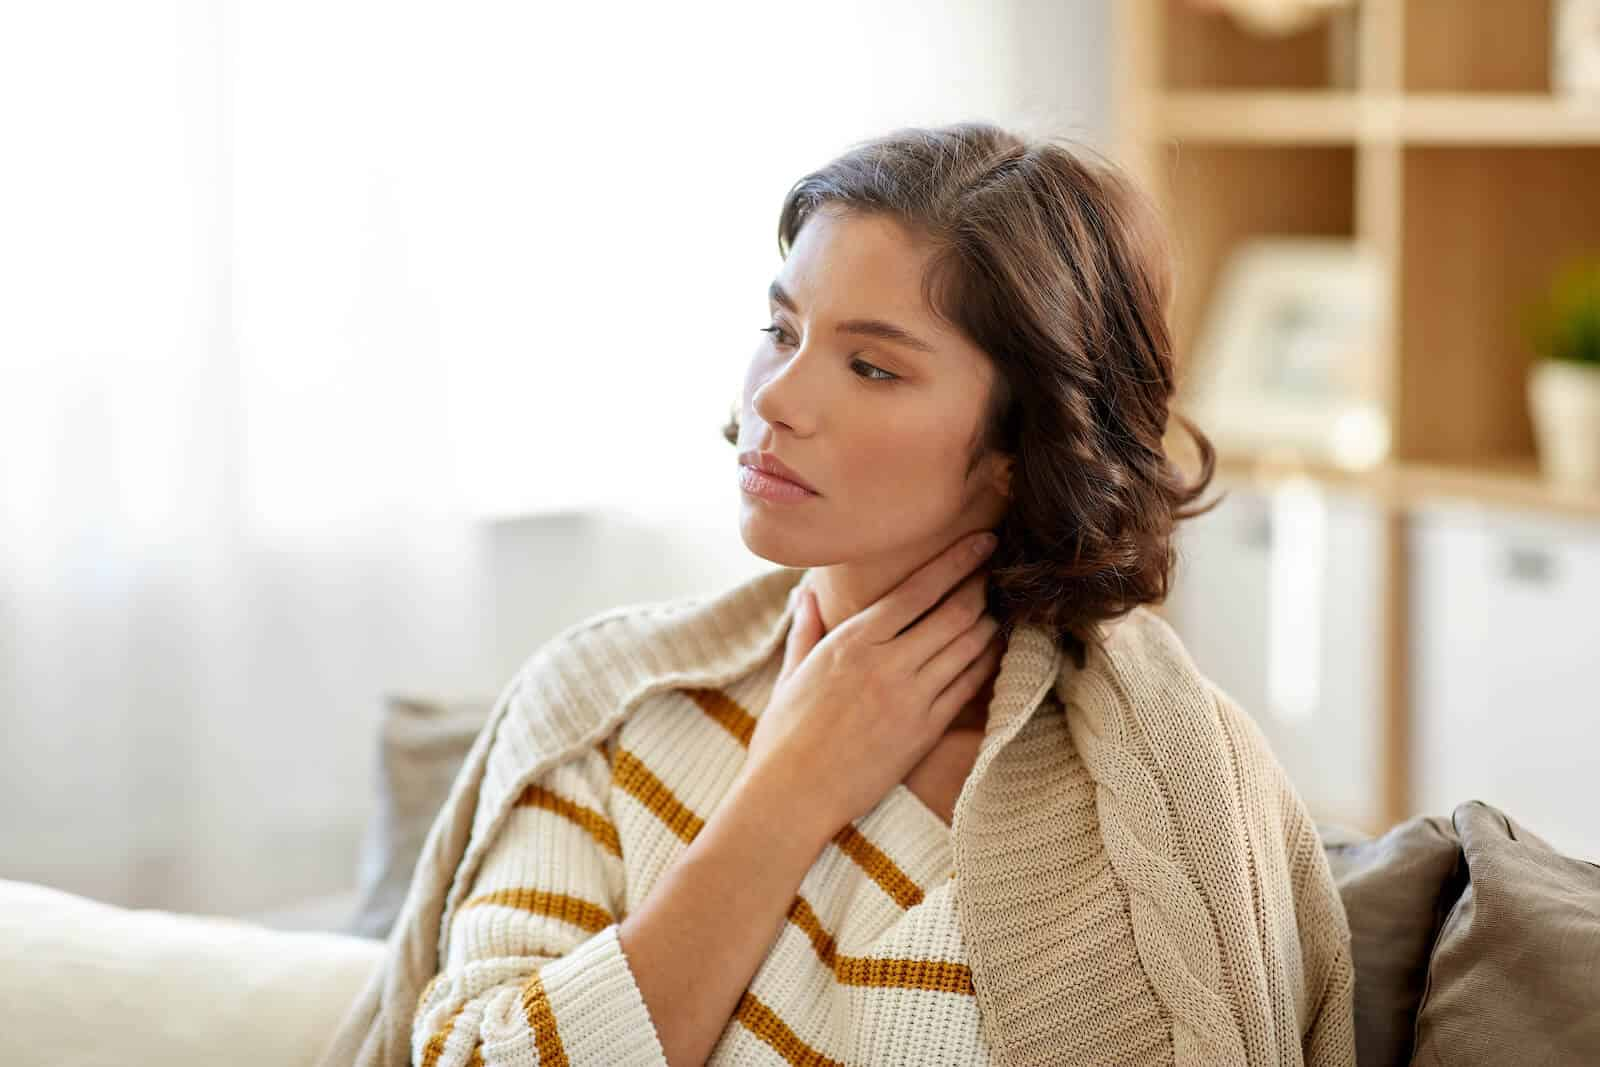 LPR symptoms: woman with a sore throat touching her neck